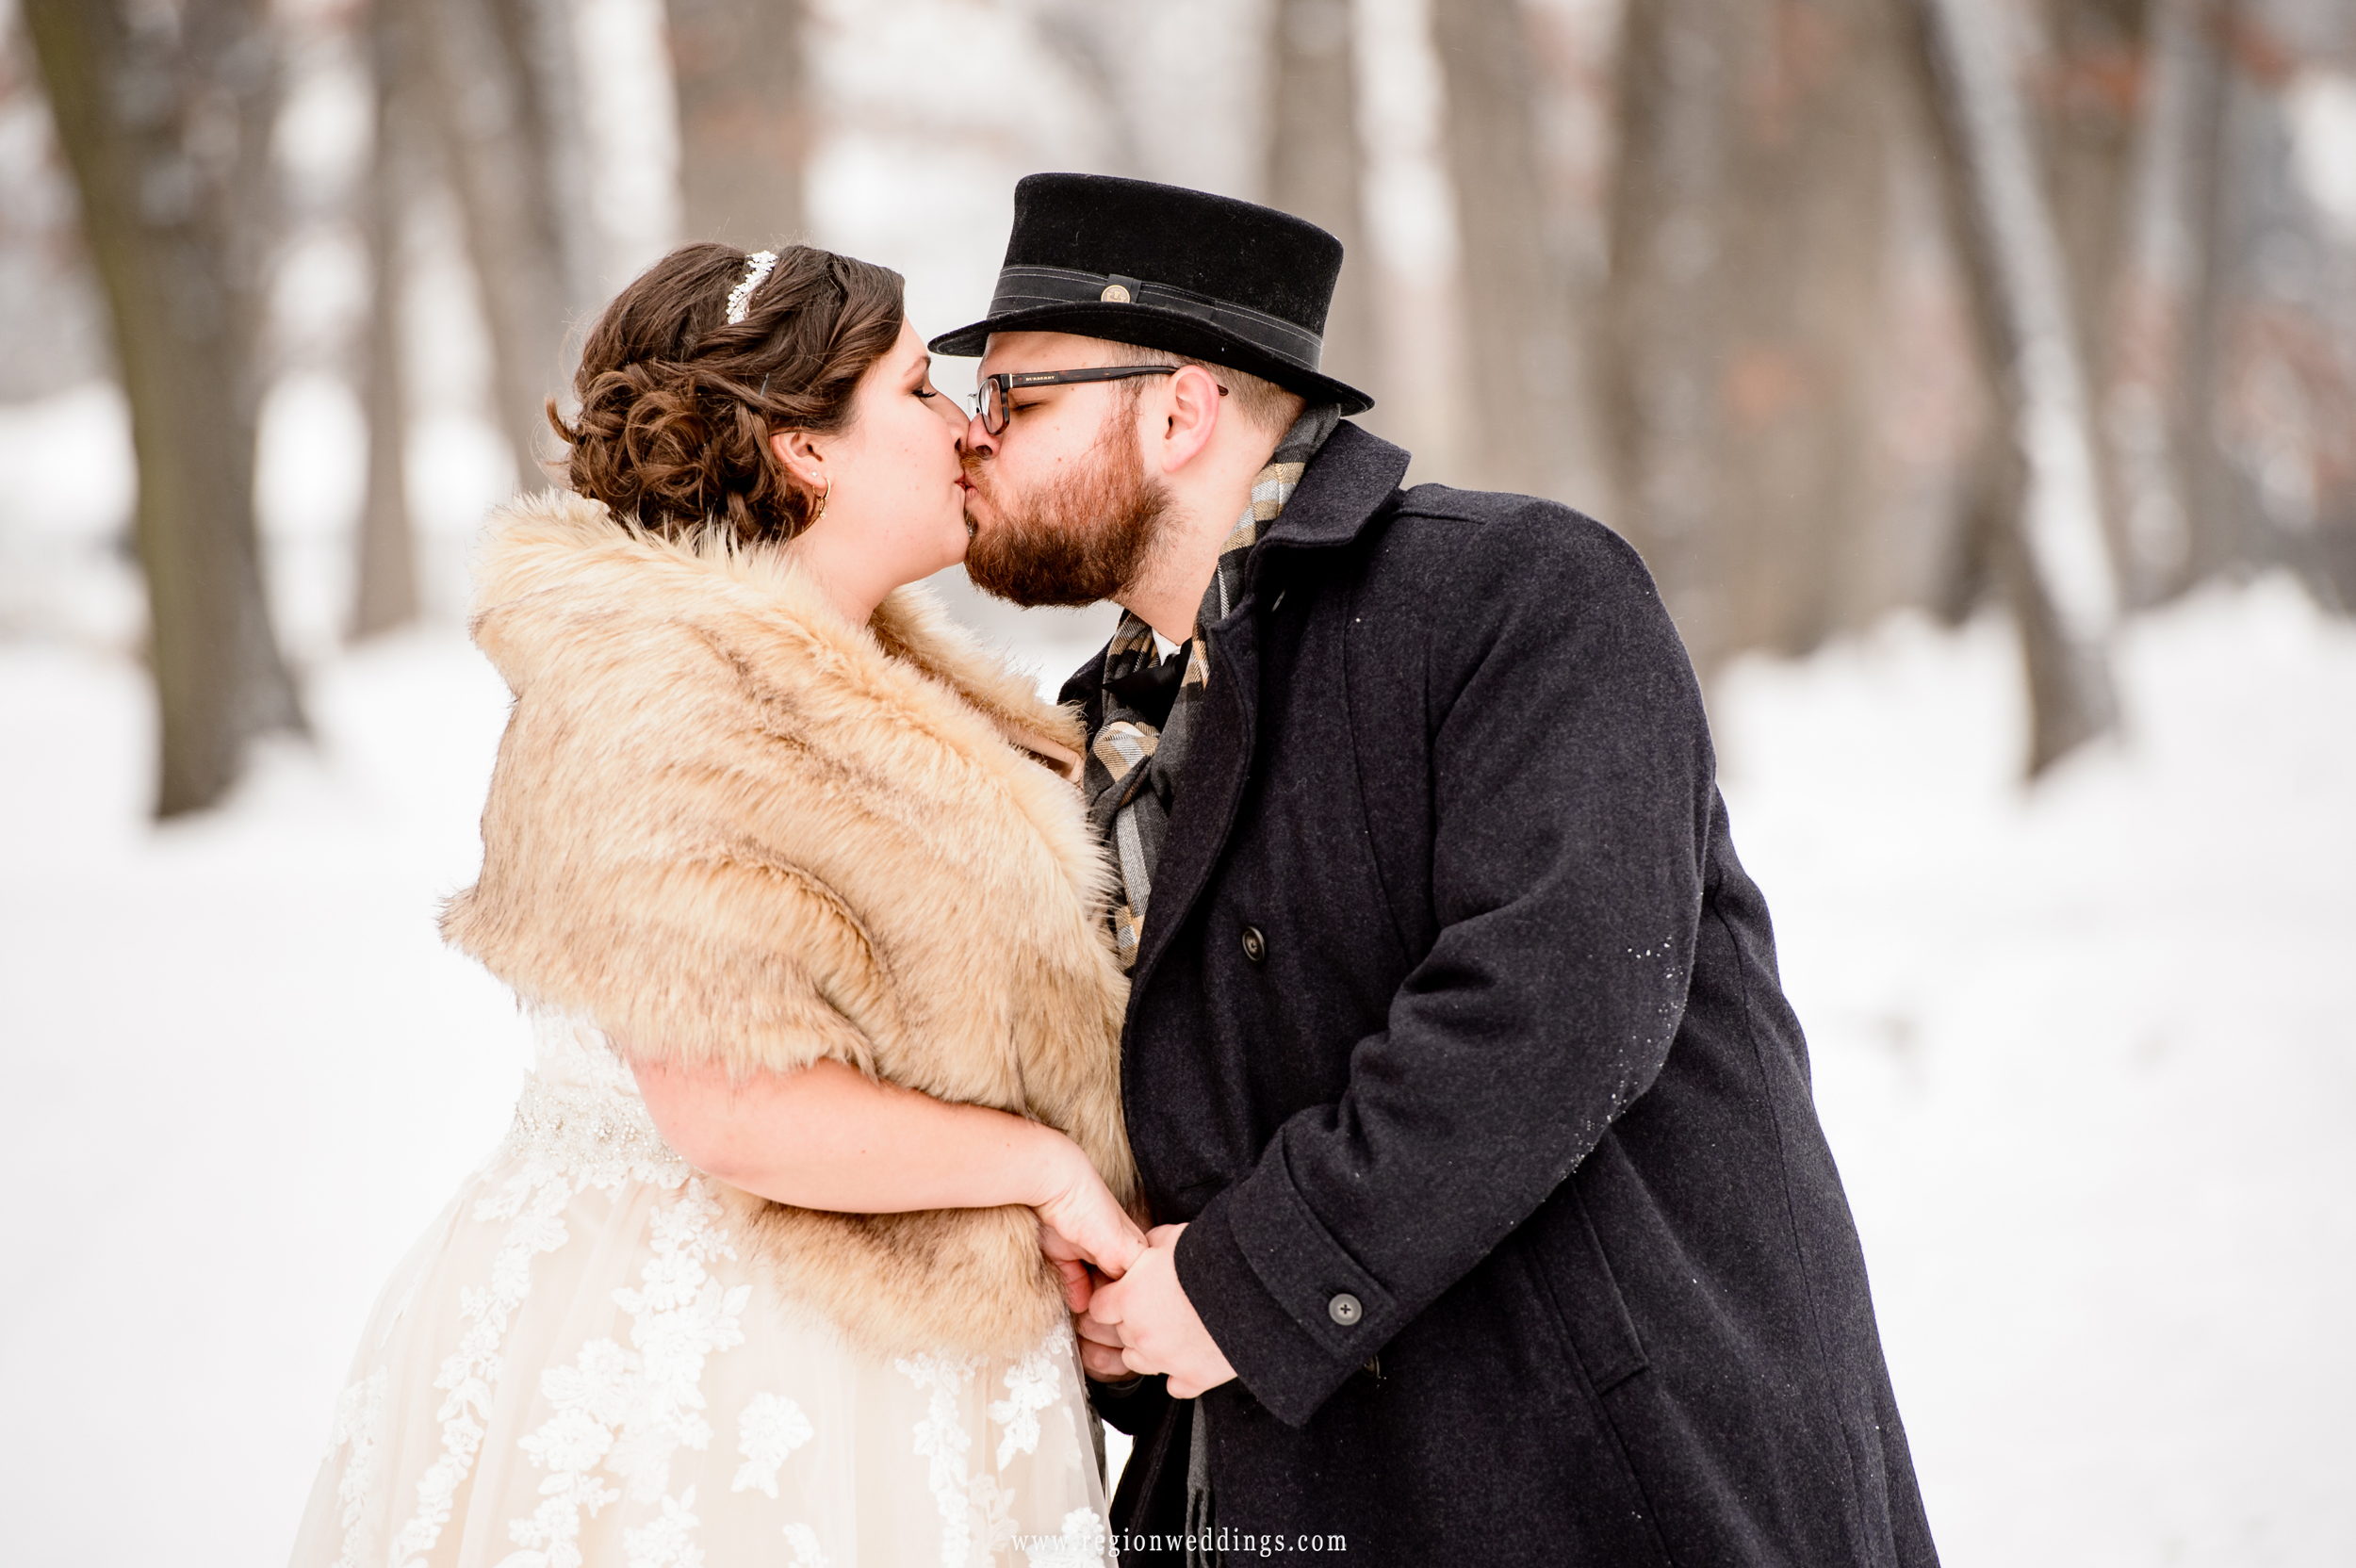 Winter kiss for the bride and groom.